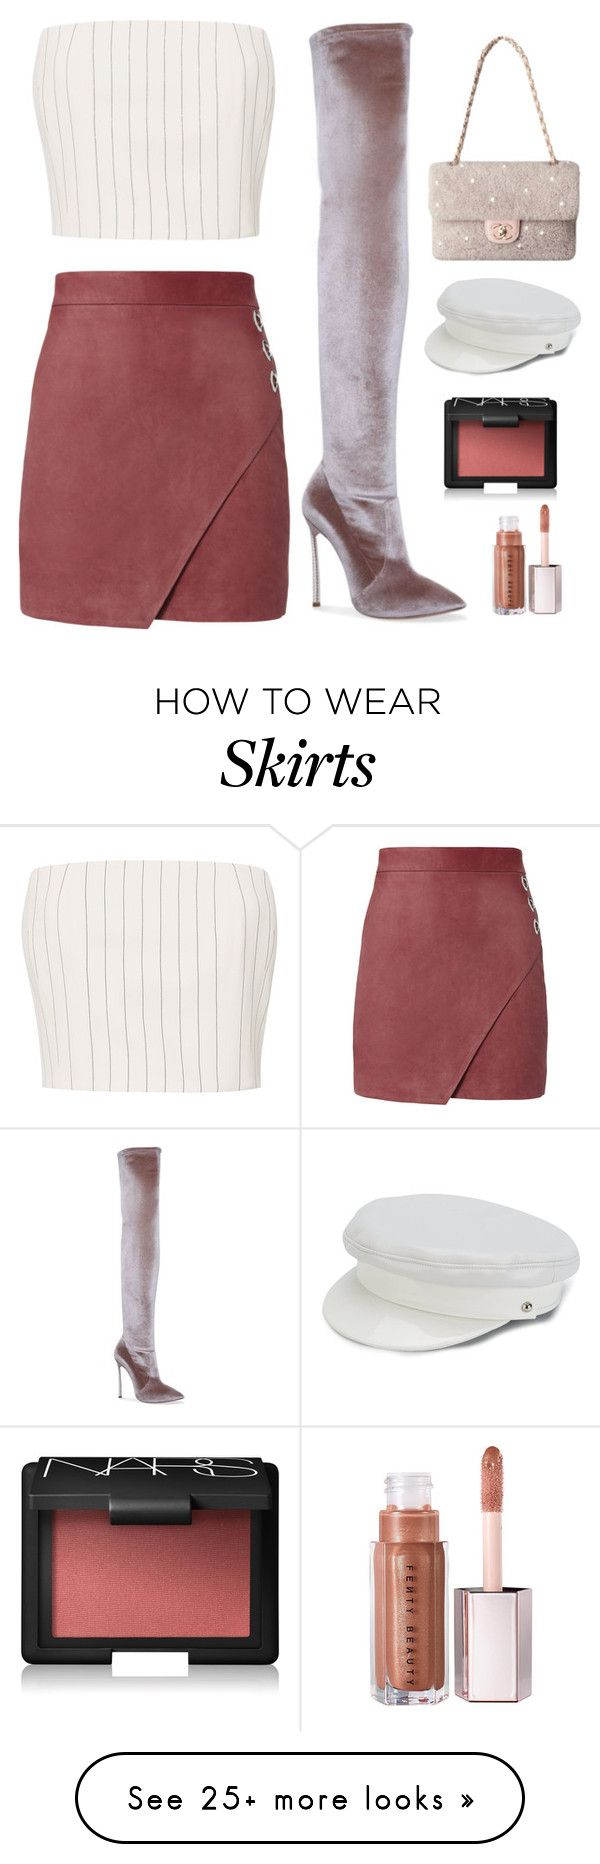 """""""Untitled #175"""" by minia001 on Polyvore featuring Thierry Mugler, Michelle Mason, Casadei, Manokhi and NARS Cosmetics"""